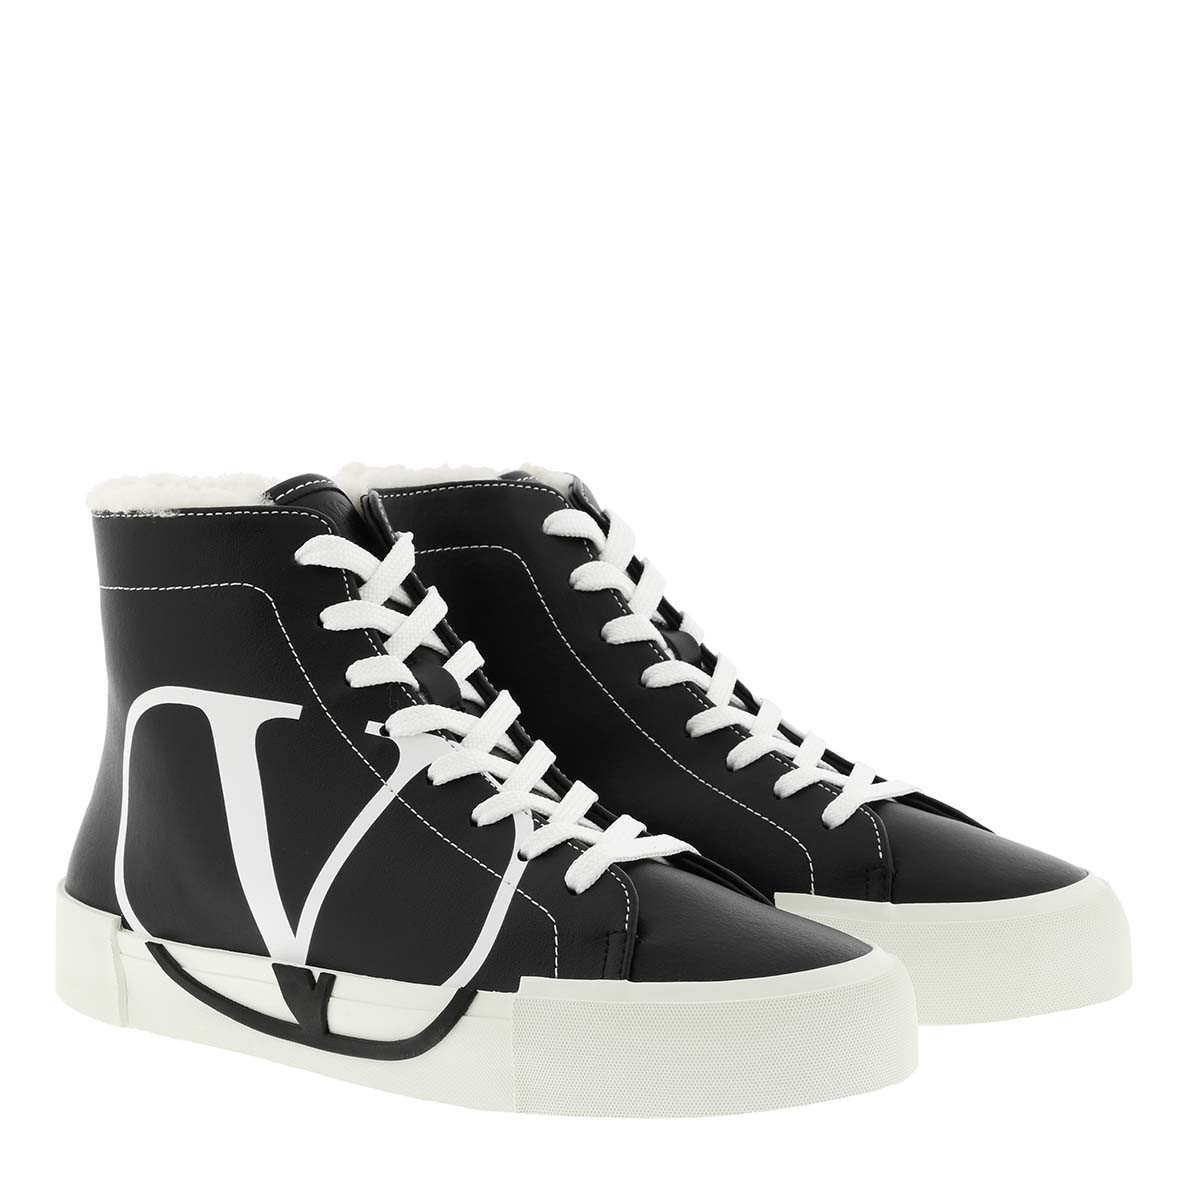 Valentino Sneakers - Sneaker Low Black/White - in schwarz - für Damen